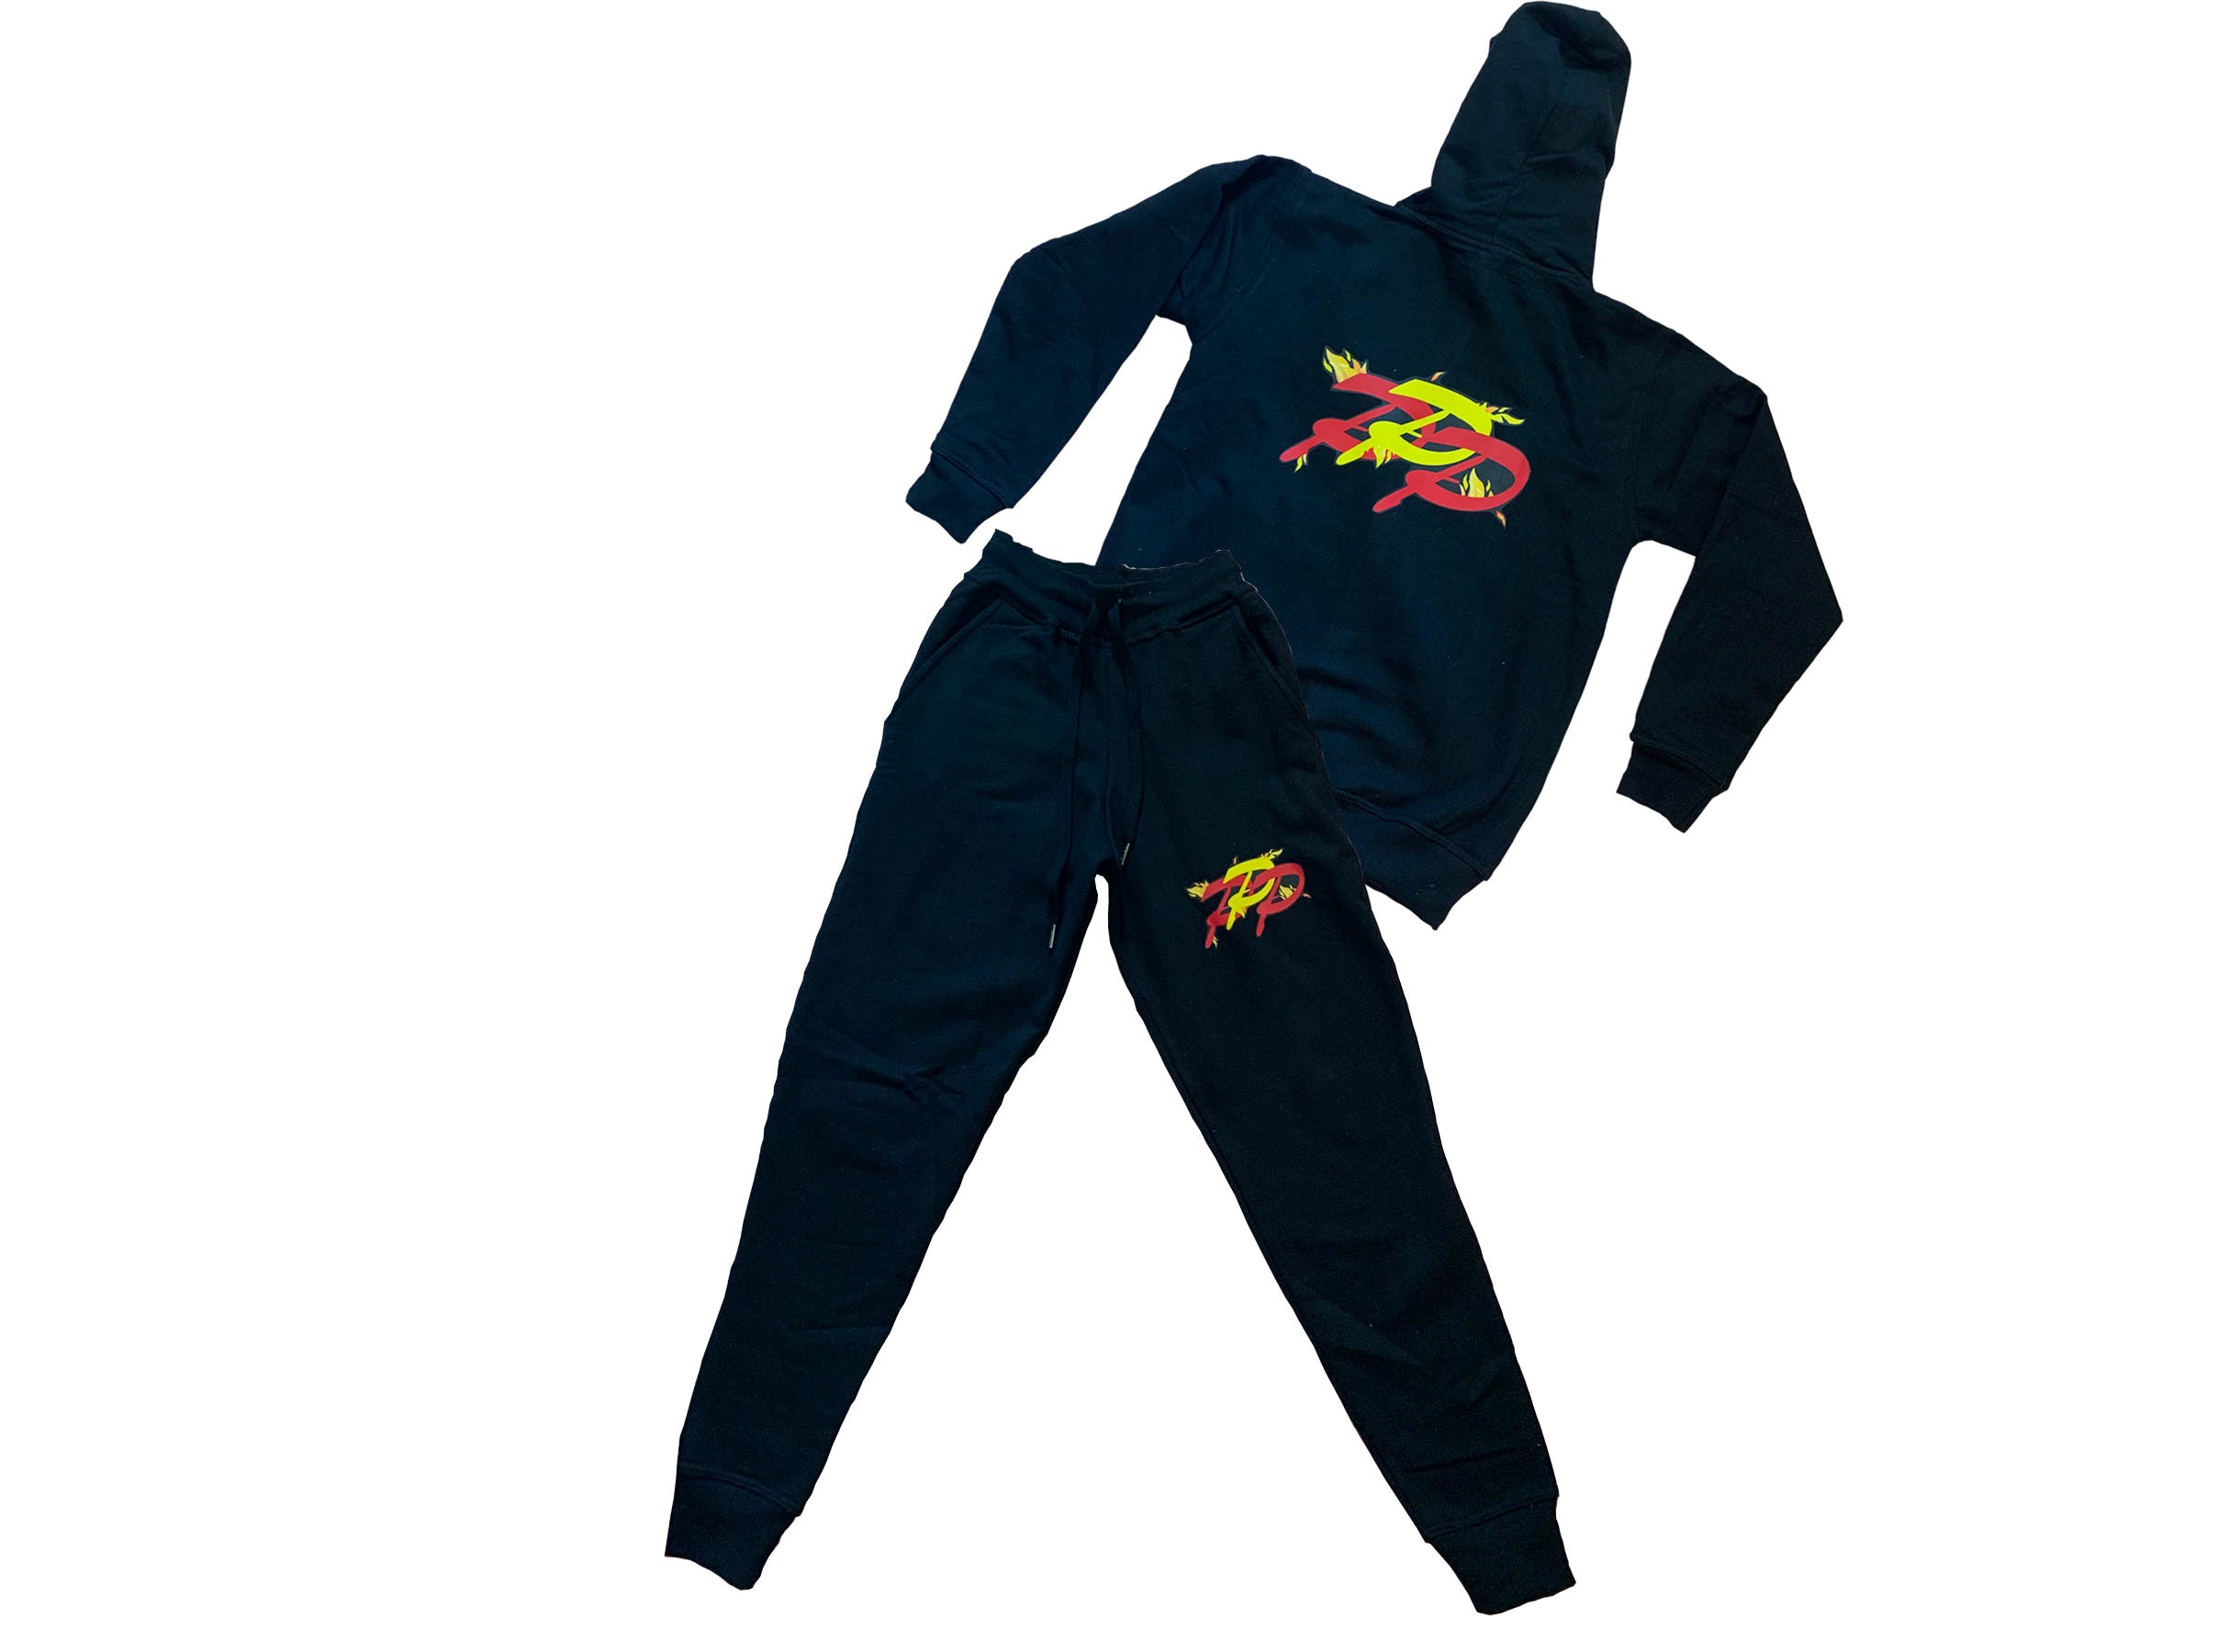 AMATERASU BURN IN FLAMES SWEATSUIT